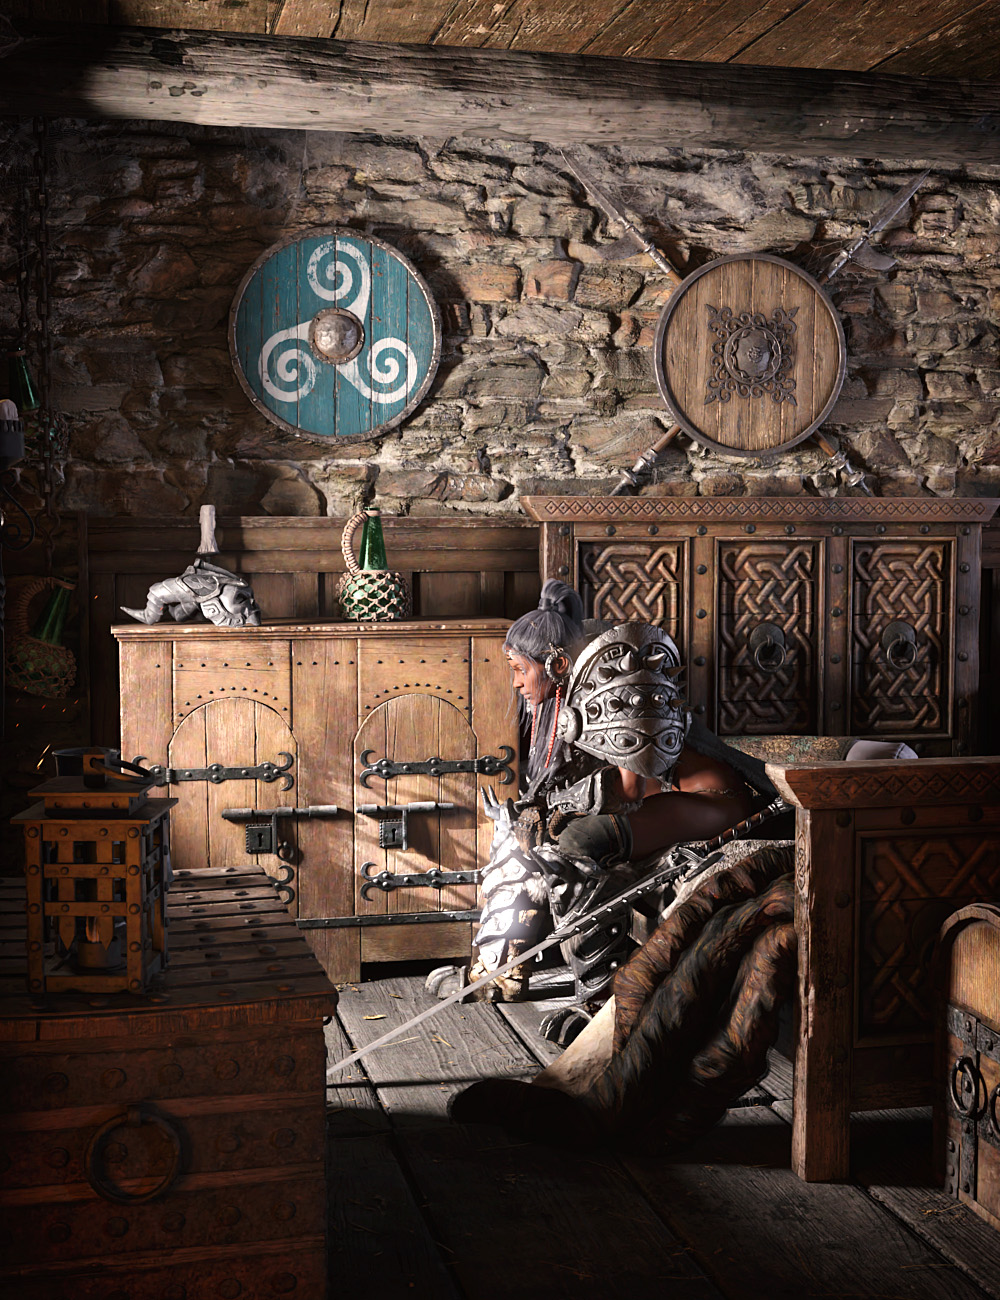 ROG Medieval Fantasy Bedroom by: StrangefateRoguey, 3D Models by Daz 3D